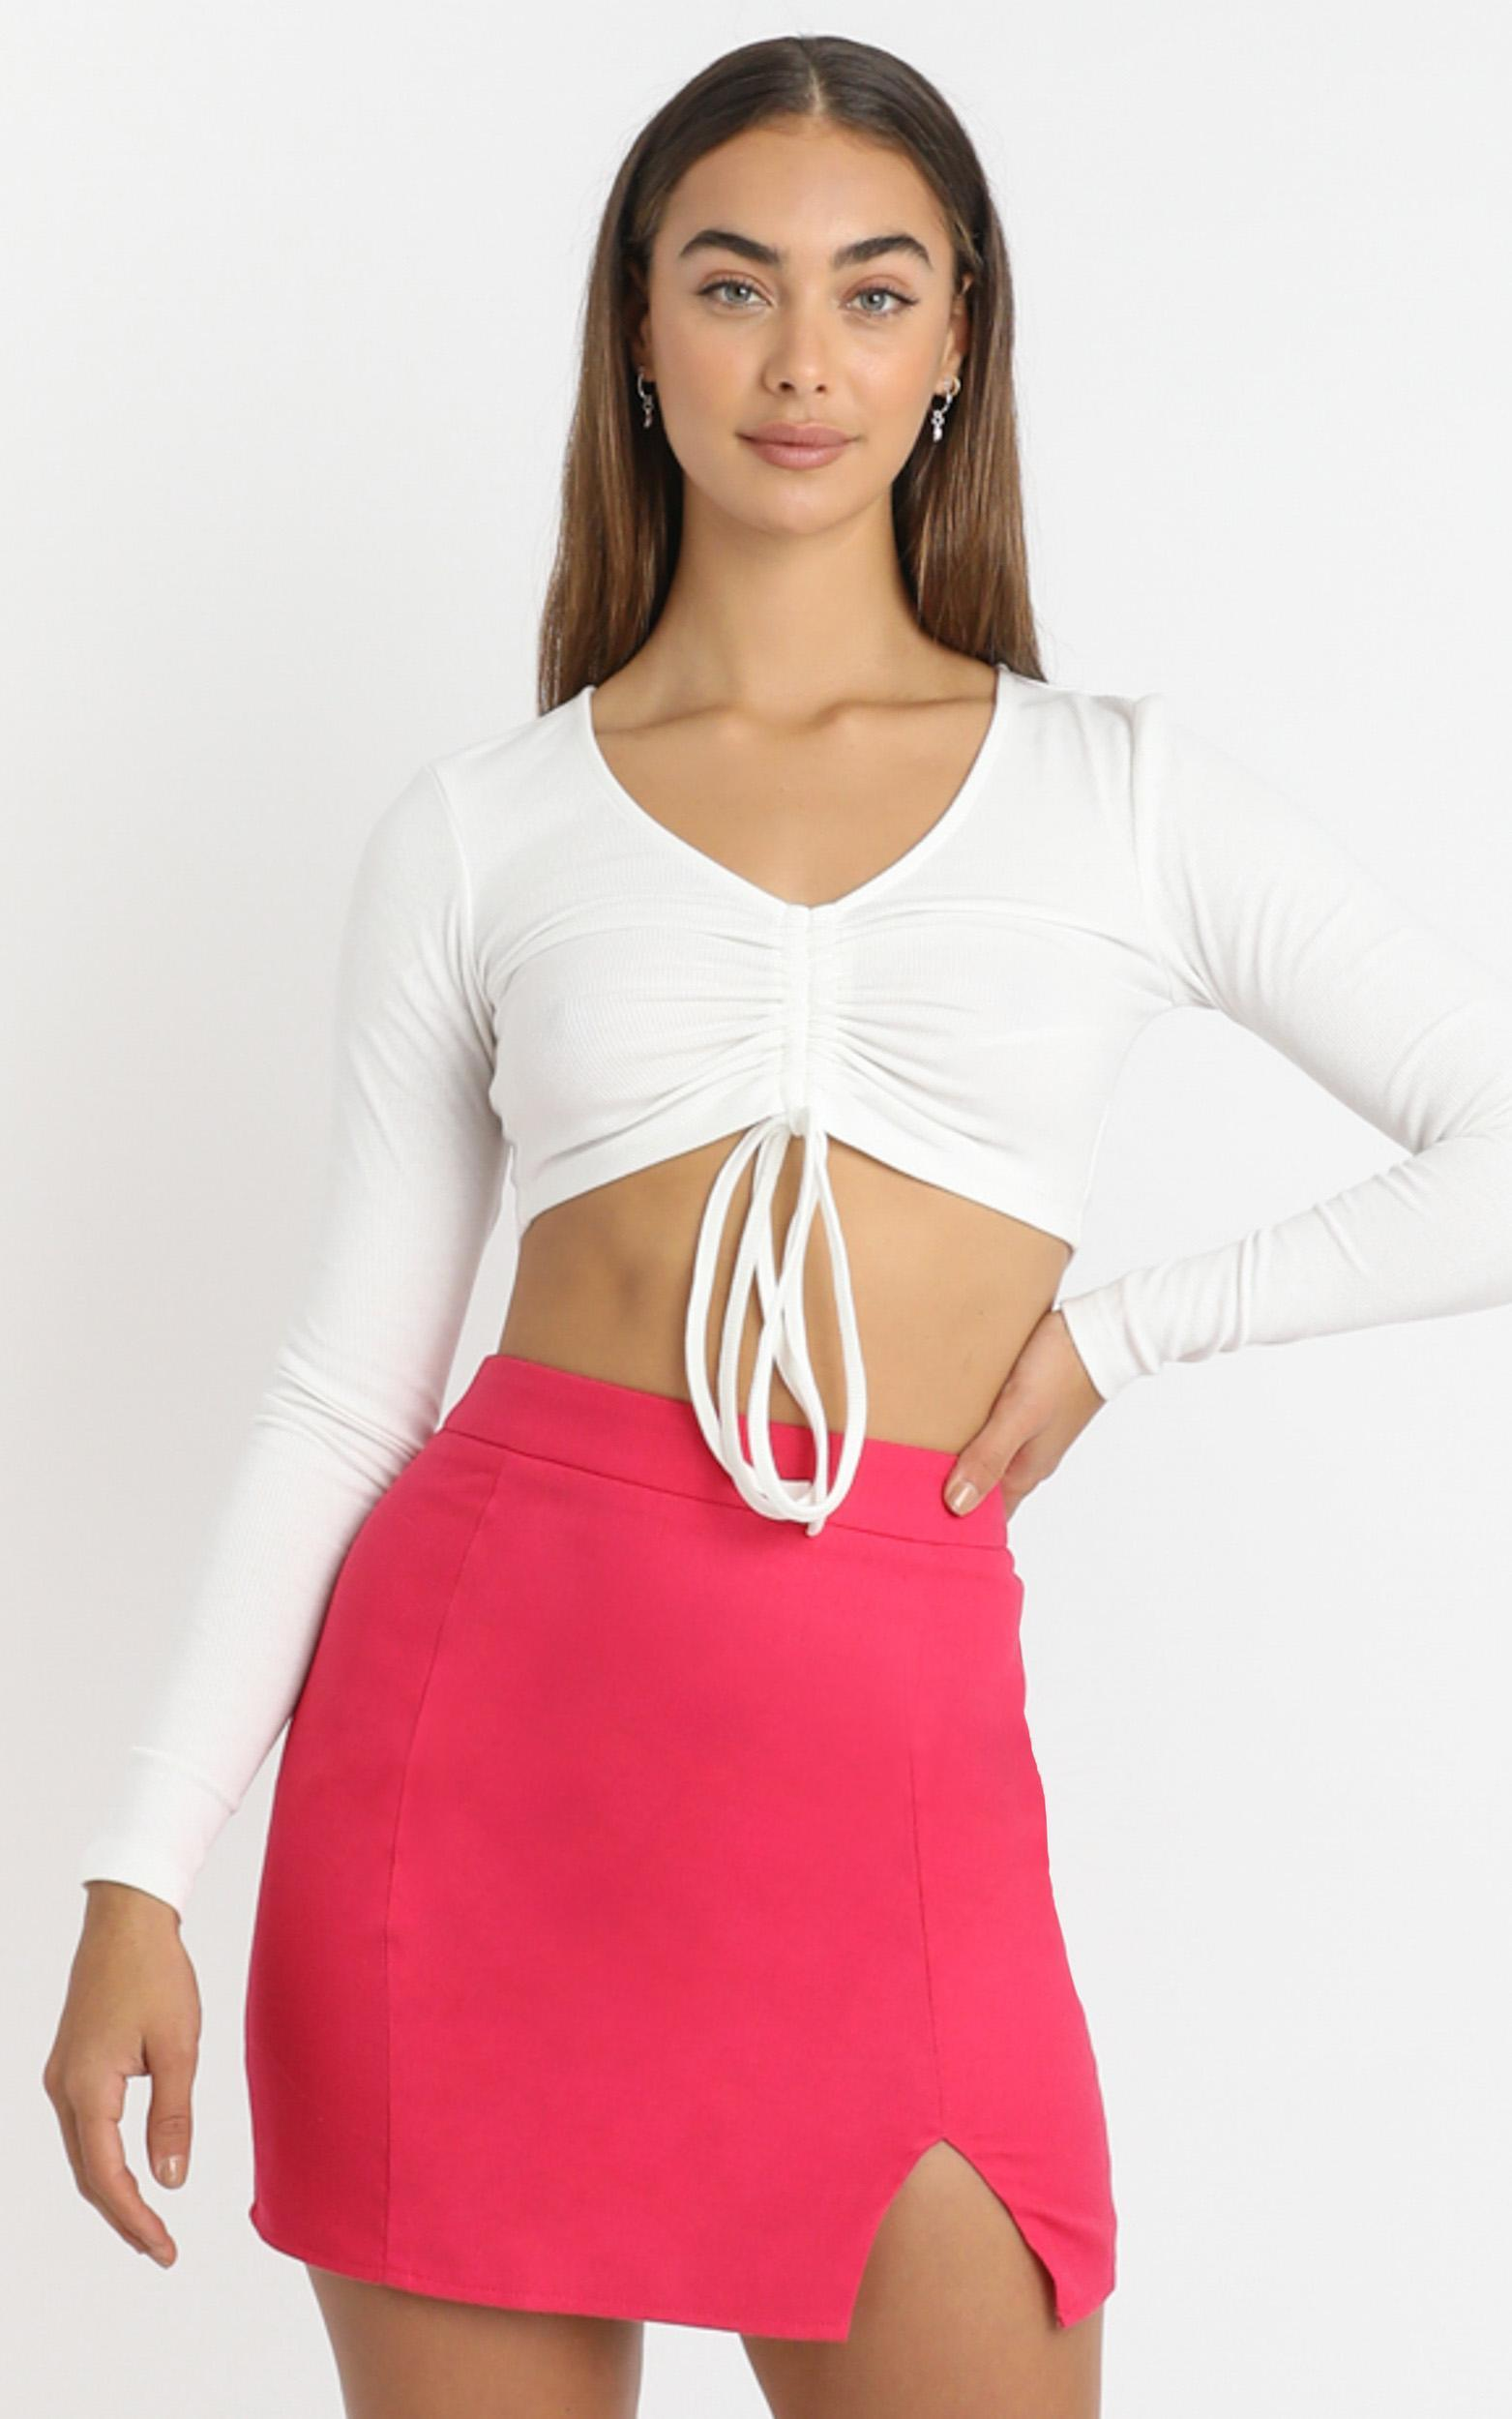 International Babe Skirt In hot pink linen look - 4 (XXS), Pink, hi-res image number null